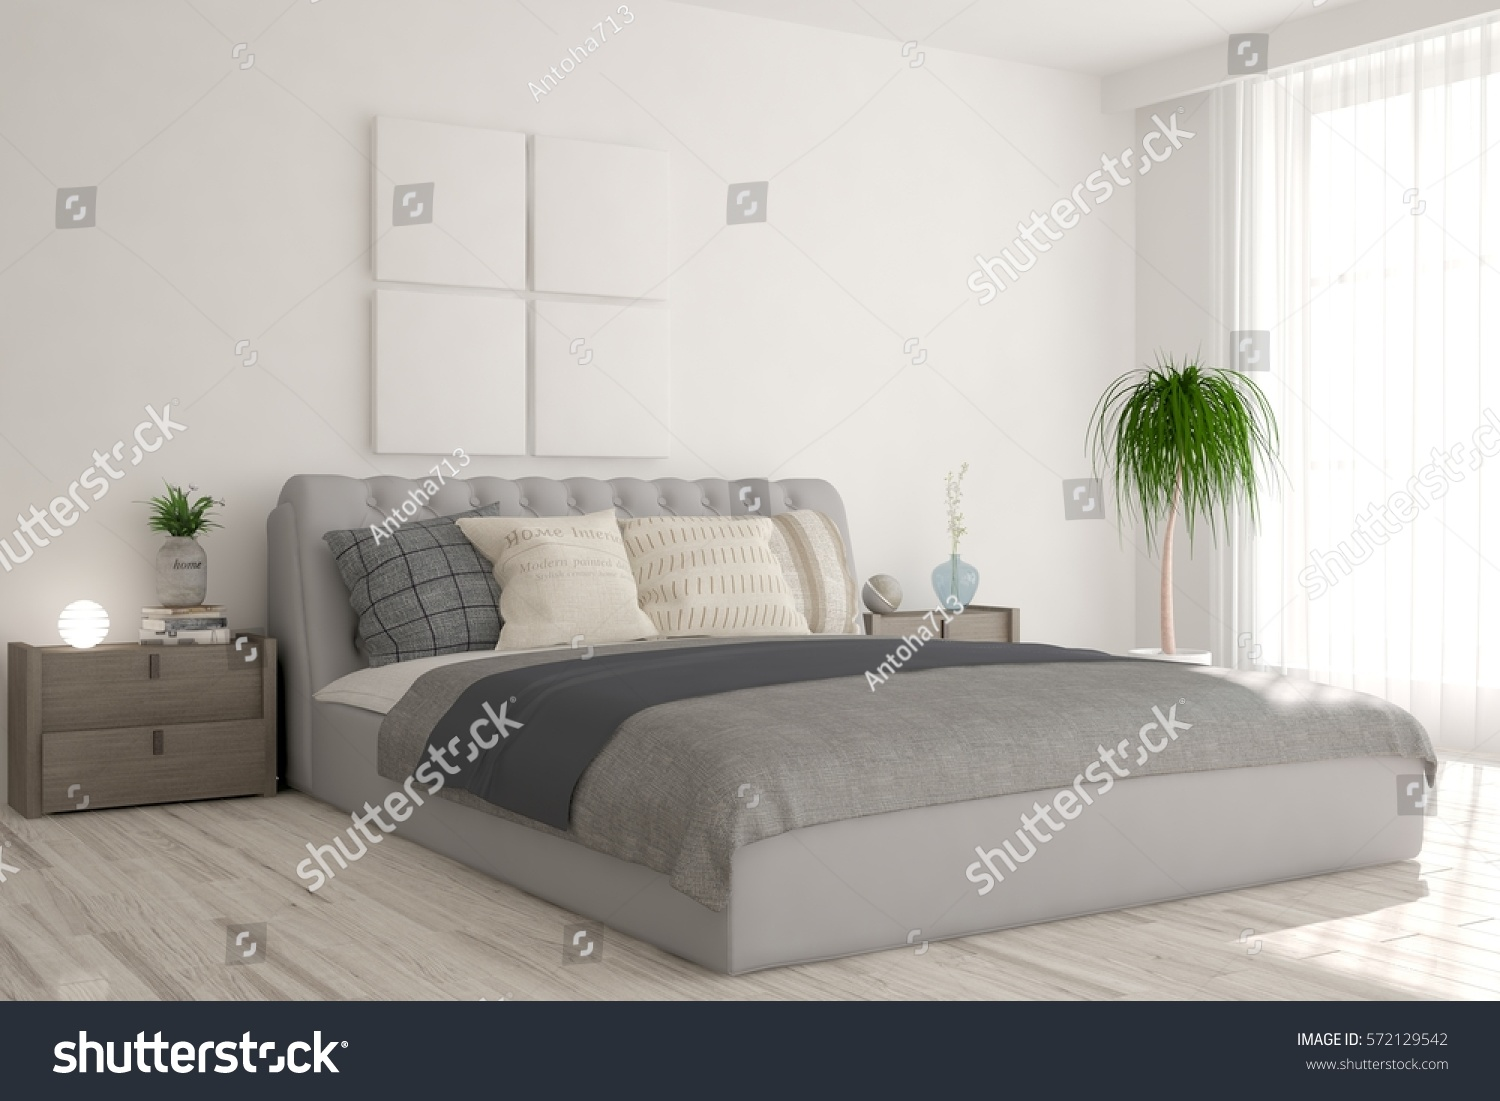 White bedroom scandinavian interior design 3d stock Scandinavian interior design bedroom